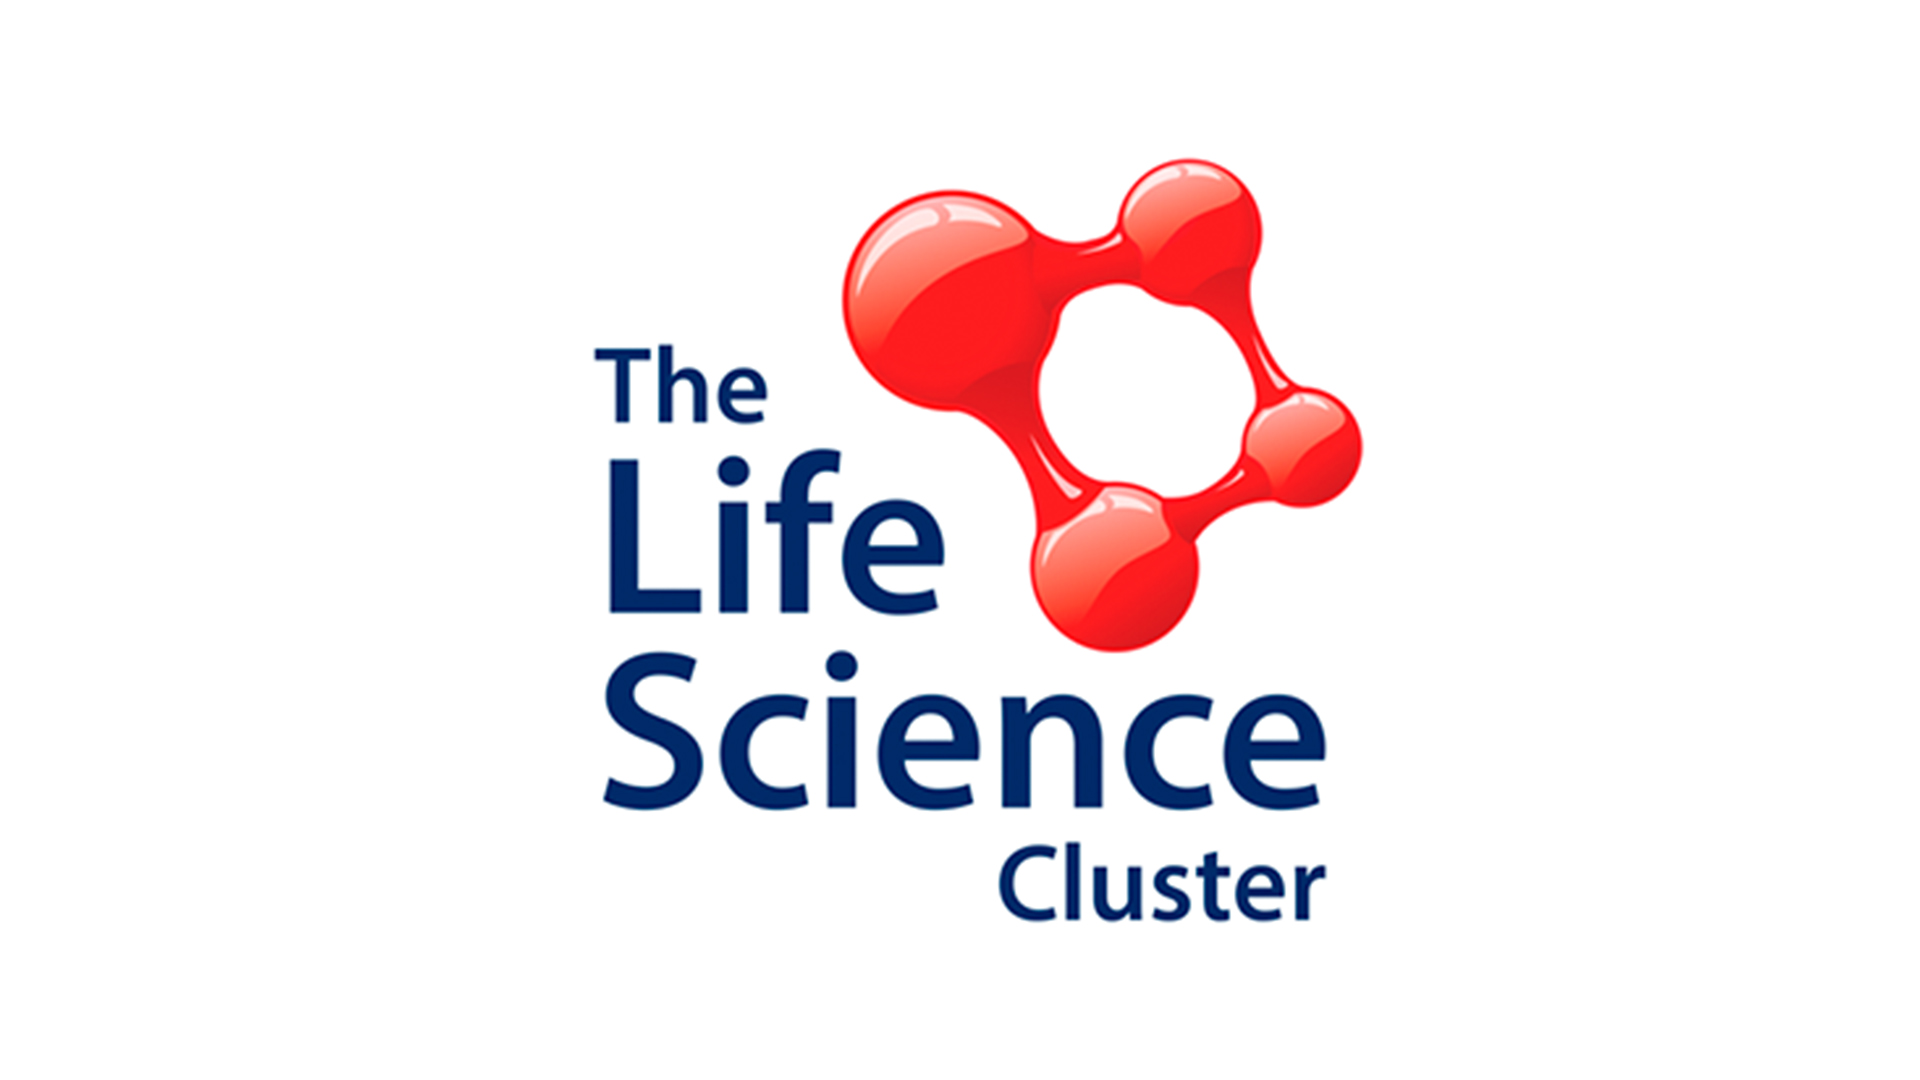 The Life Science Cluster